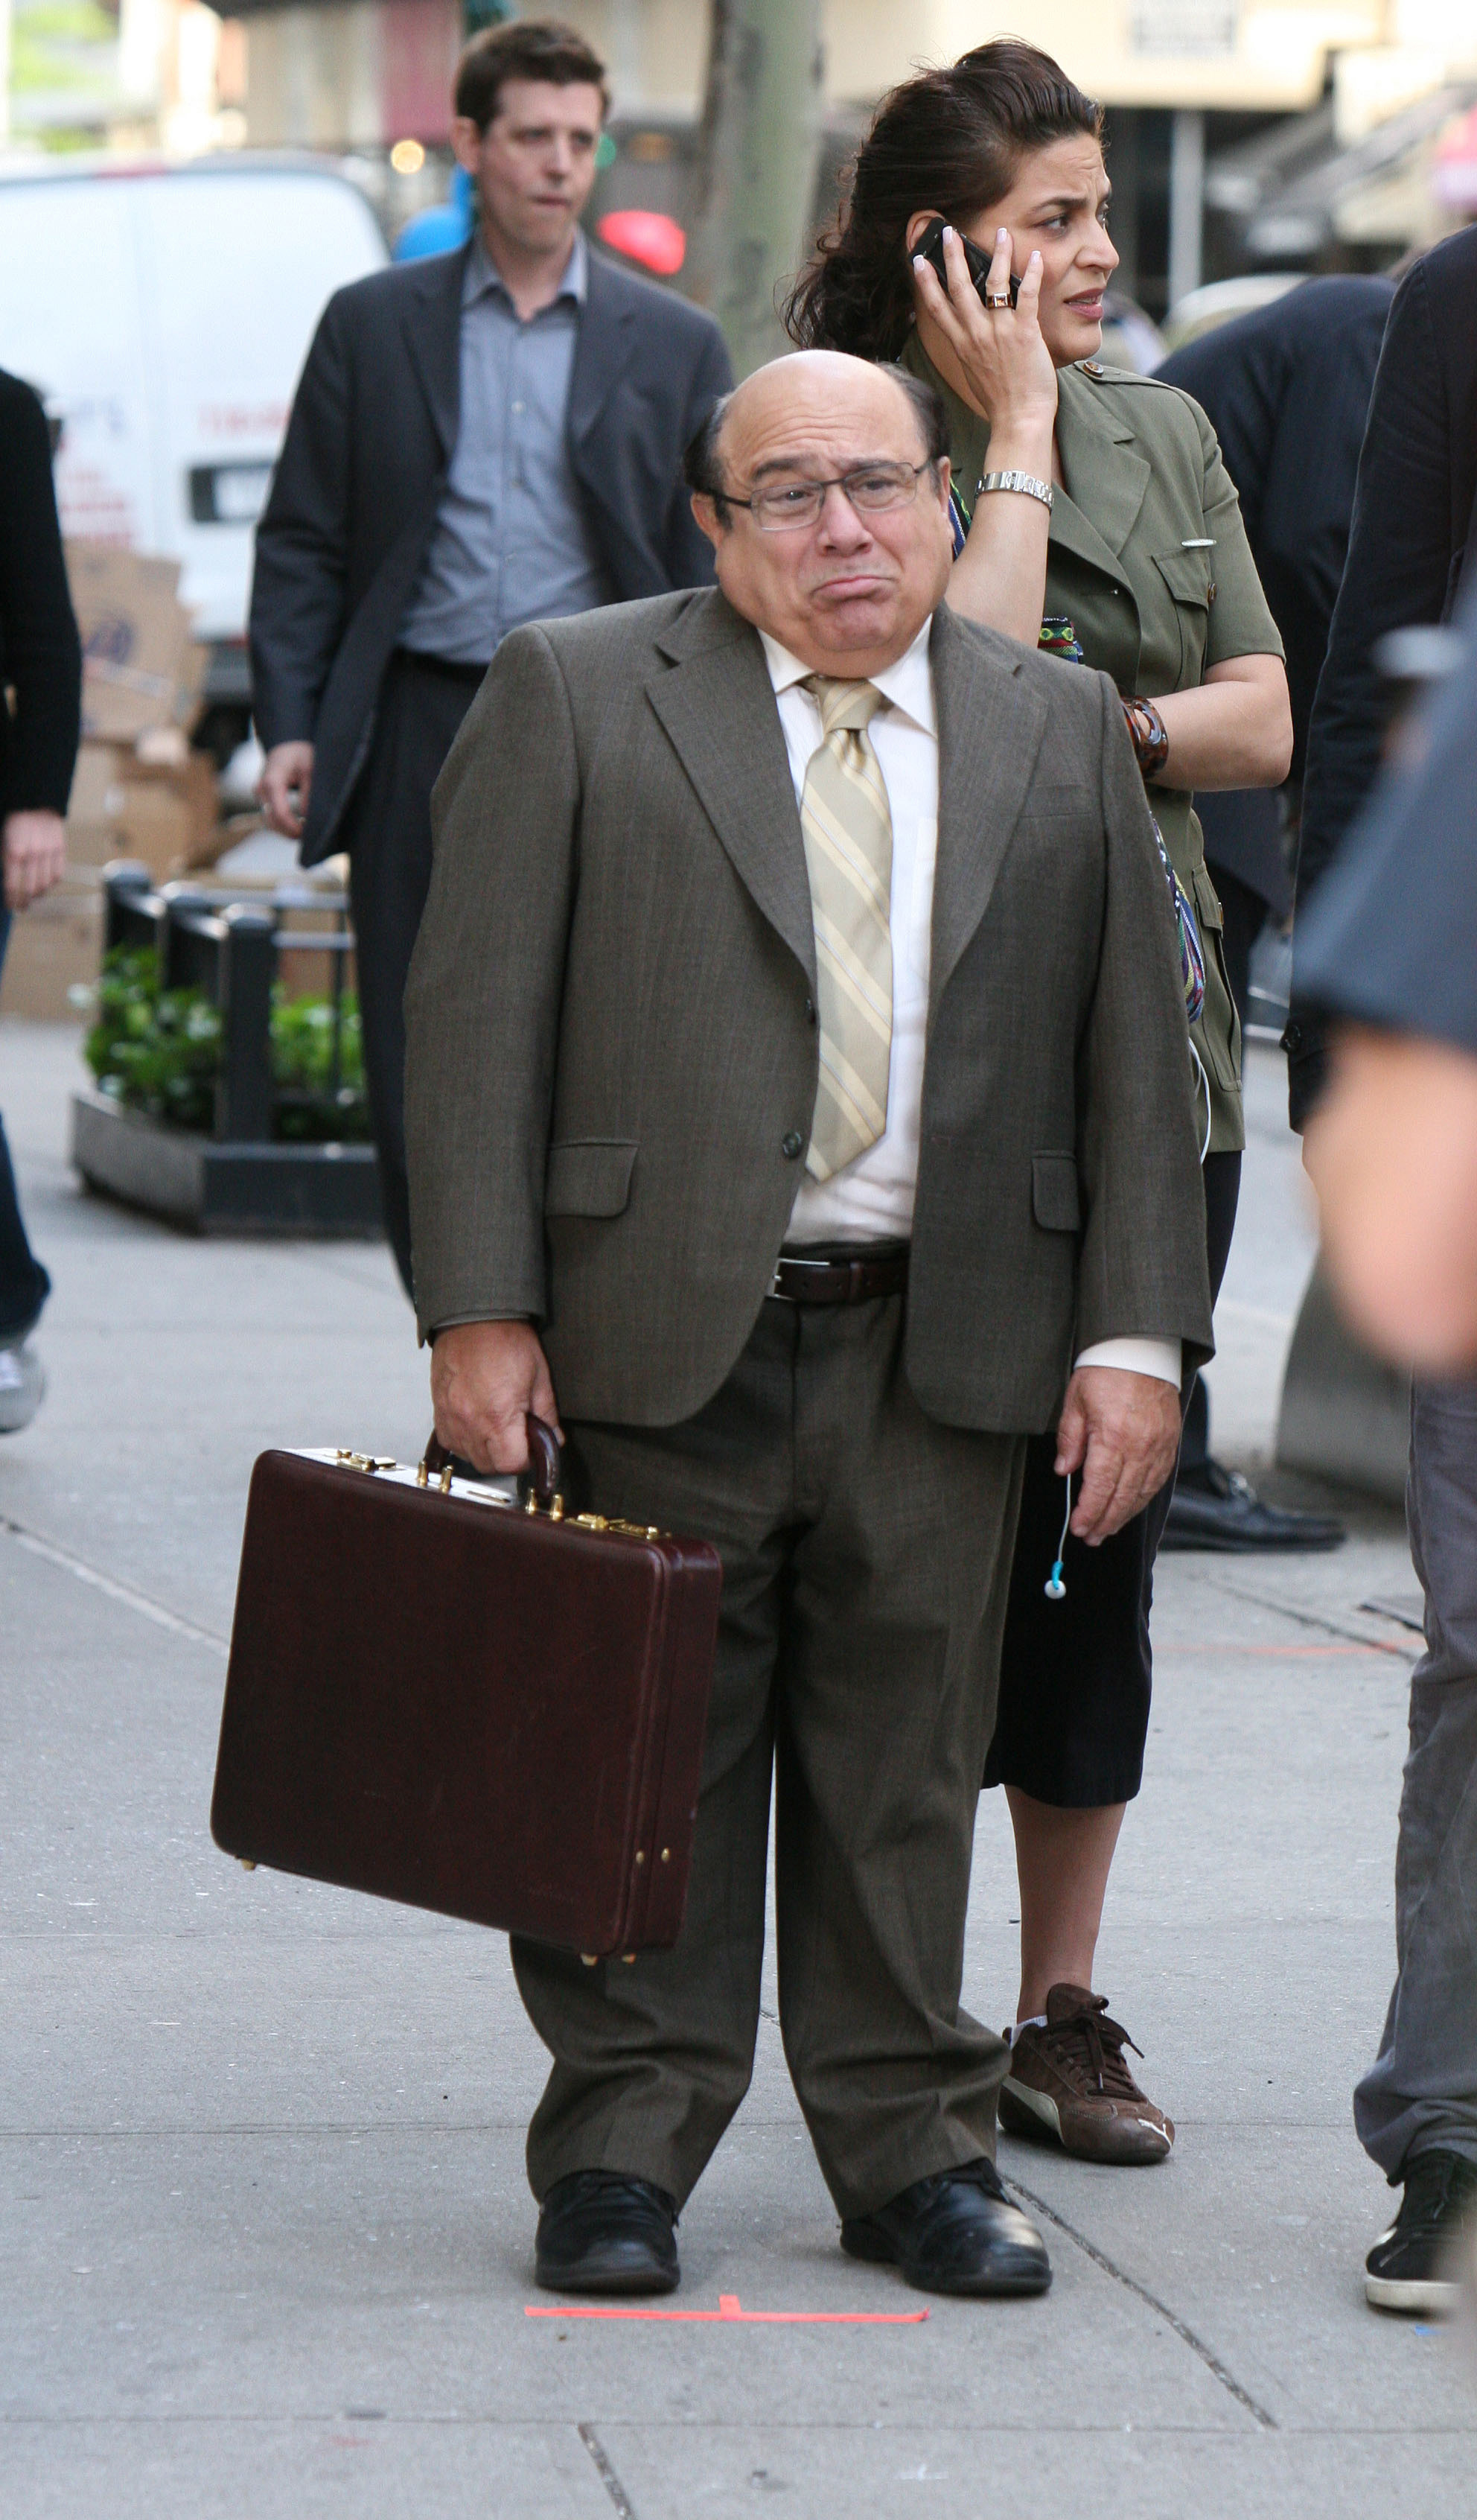 Danny DeVito films a scene from the feature film 偁hen in Rome' on Madison Avenue in New York, New York in this May 2008 file photo. Last Wednesday, Ne...